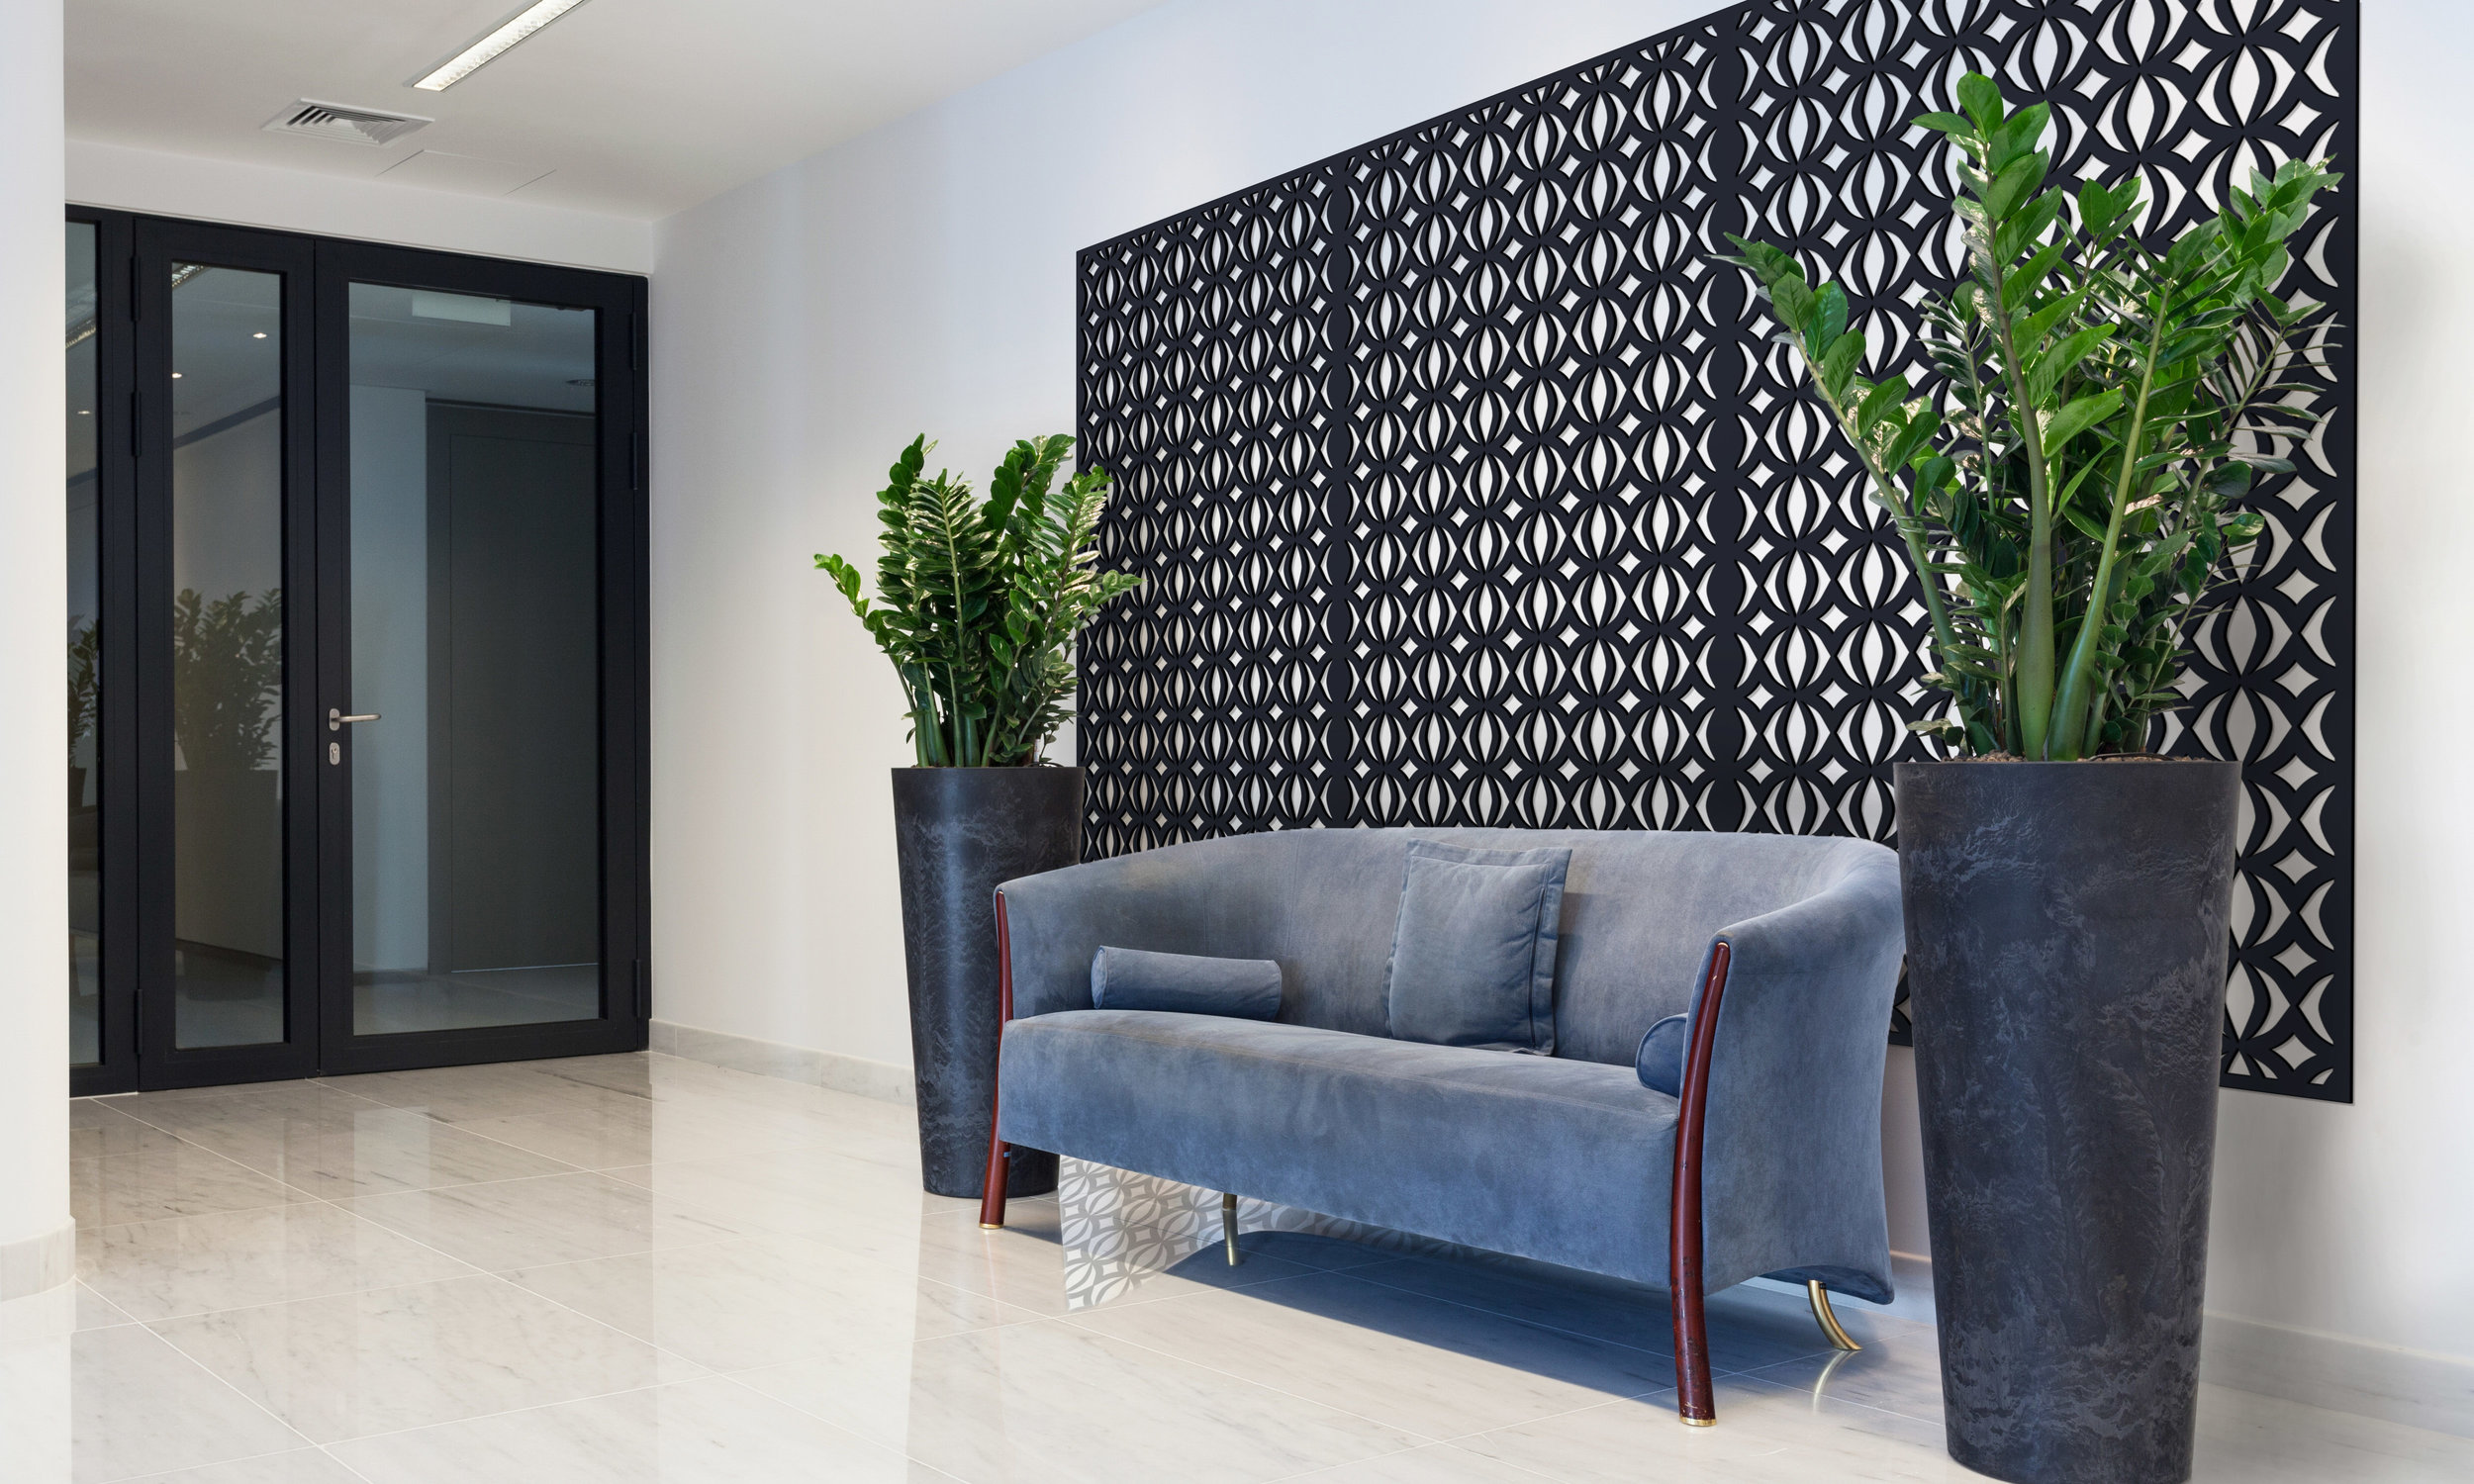 Installation Rendering B   Corcovado decorative office wall panel - painted